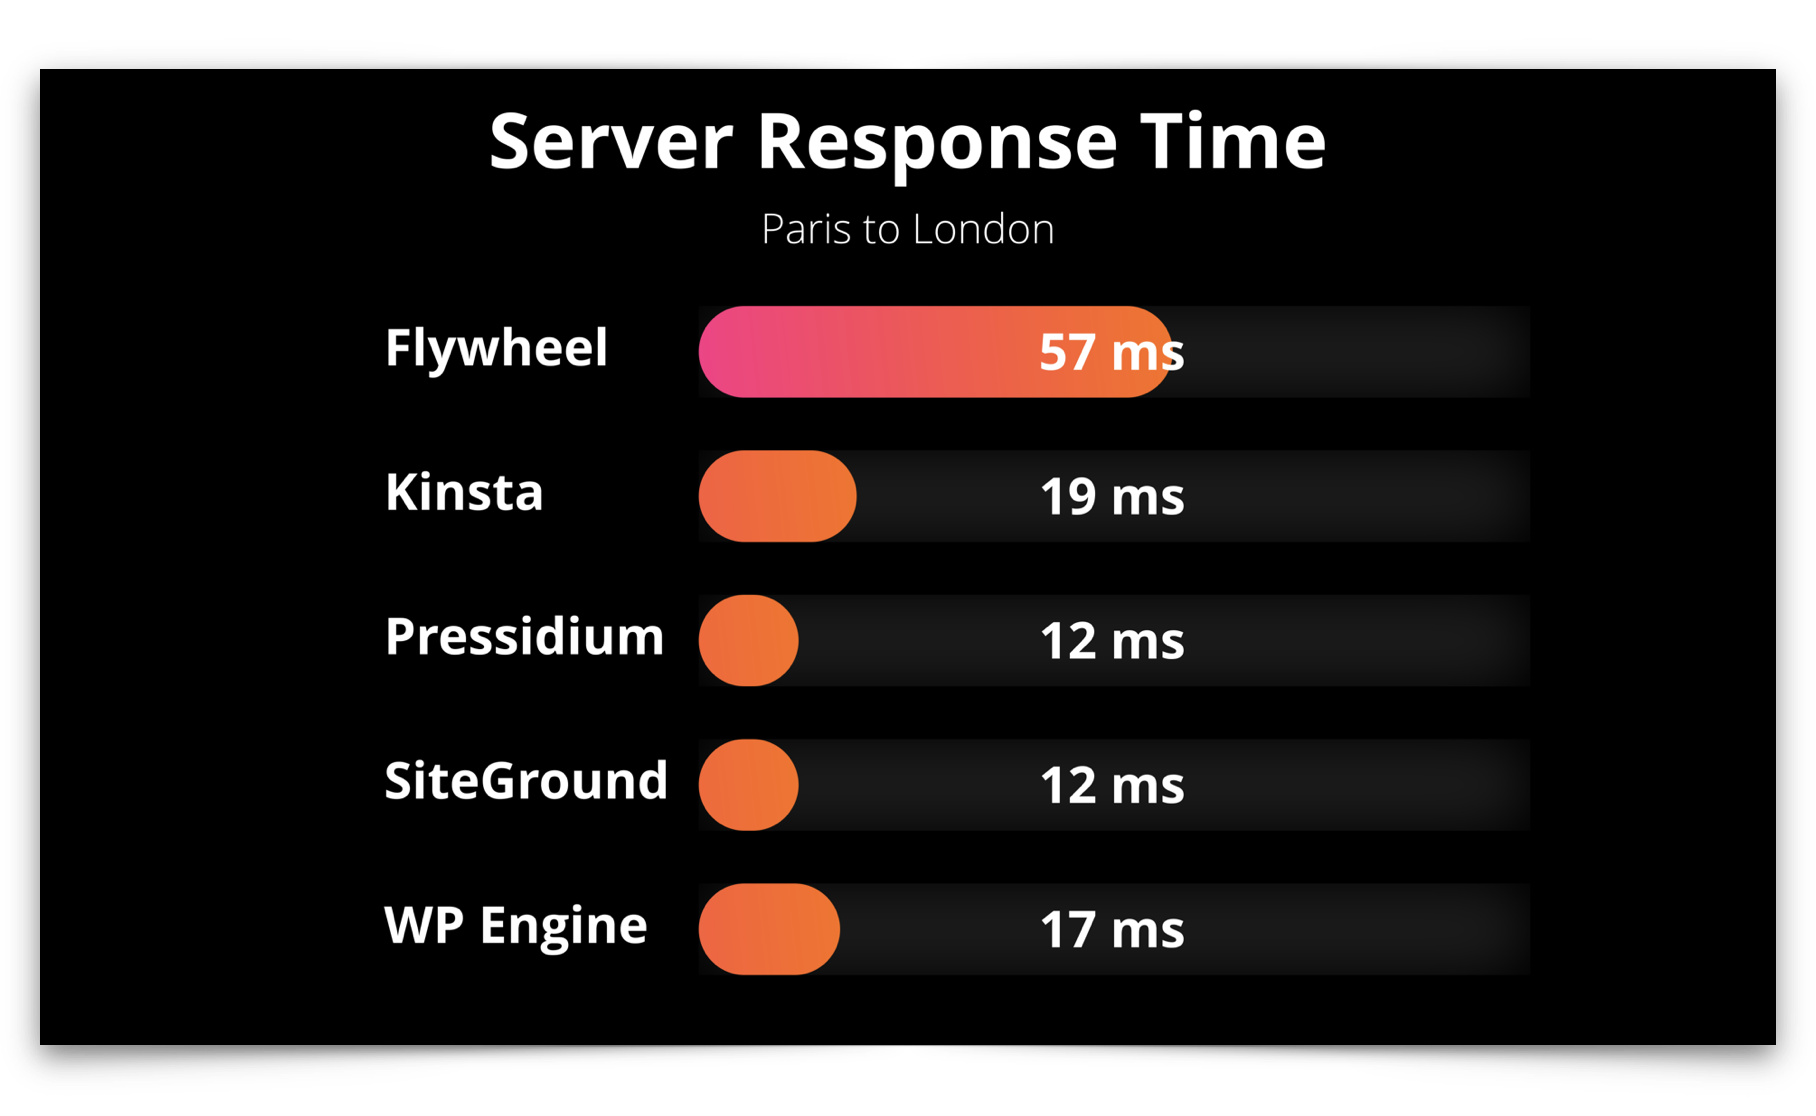 Managed WordPress server response time test results showing Pressidium and SiteGround tied for the fastest